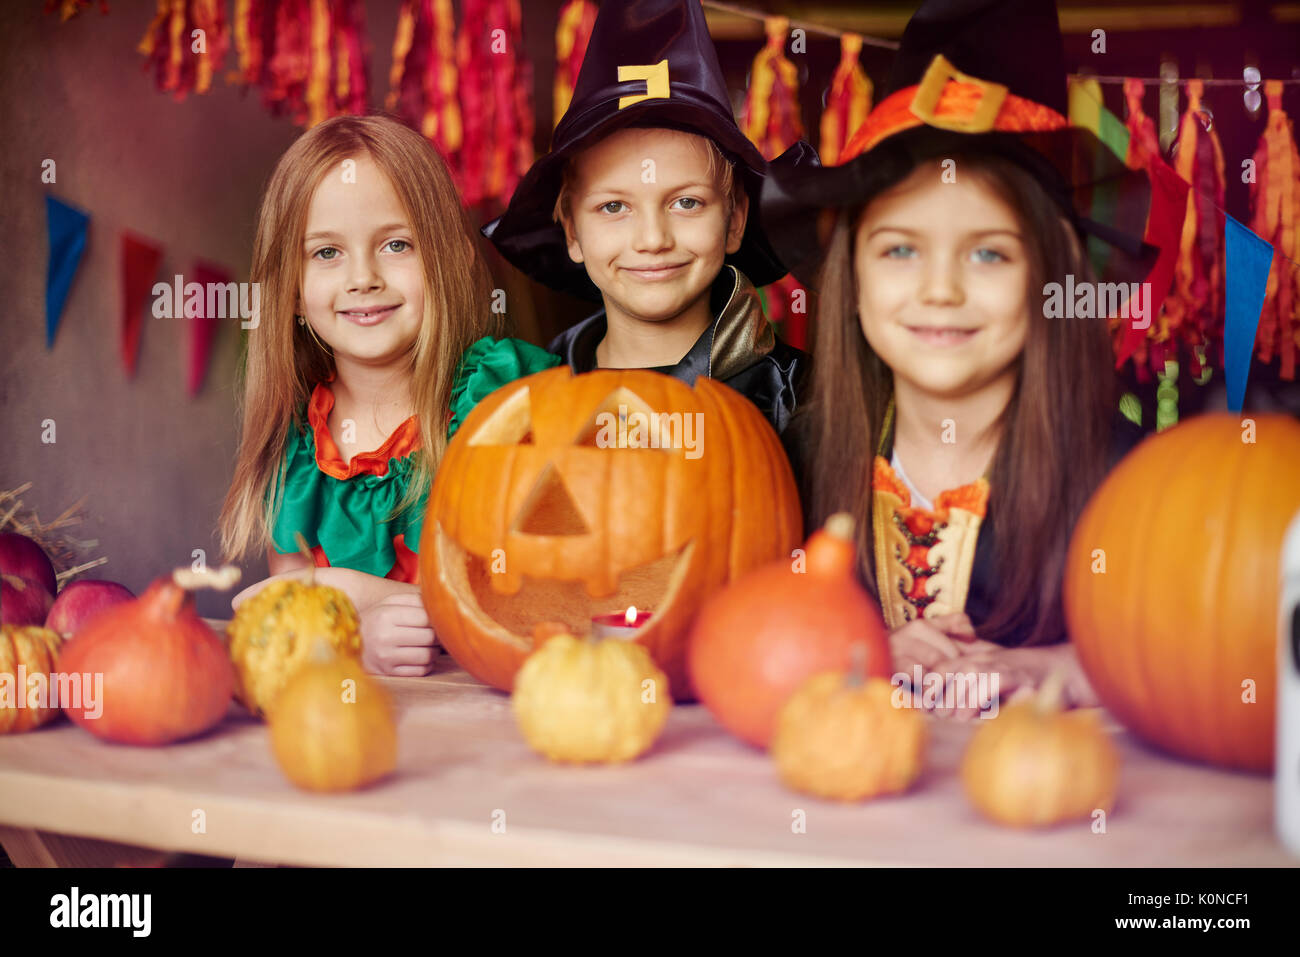 we are very proud of our jack o'lantern - Stock Image